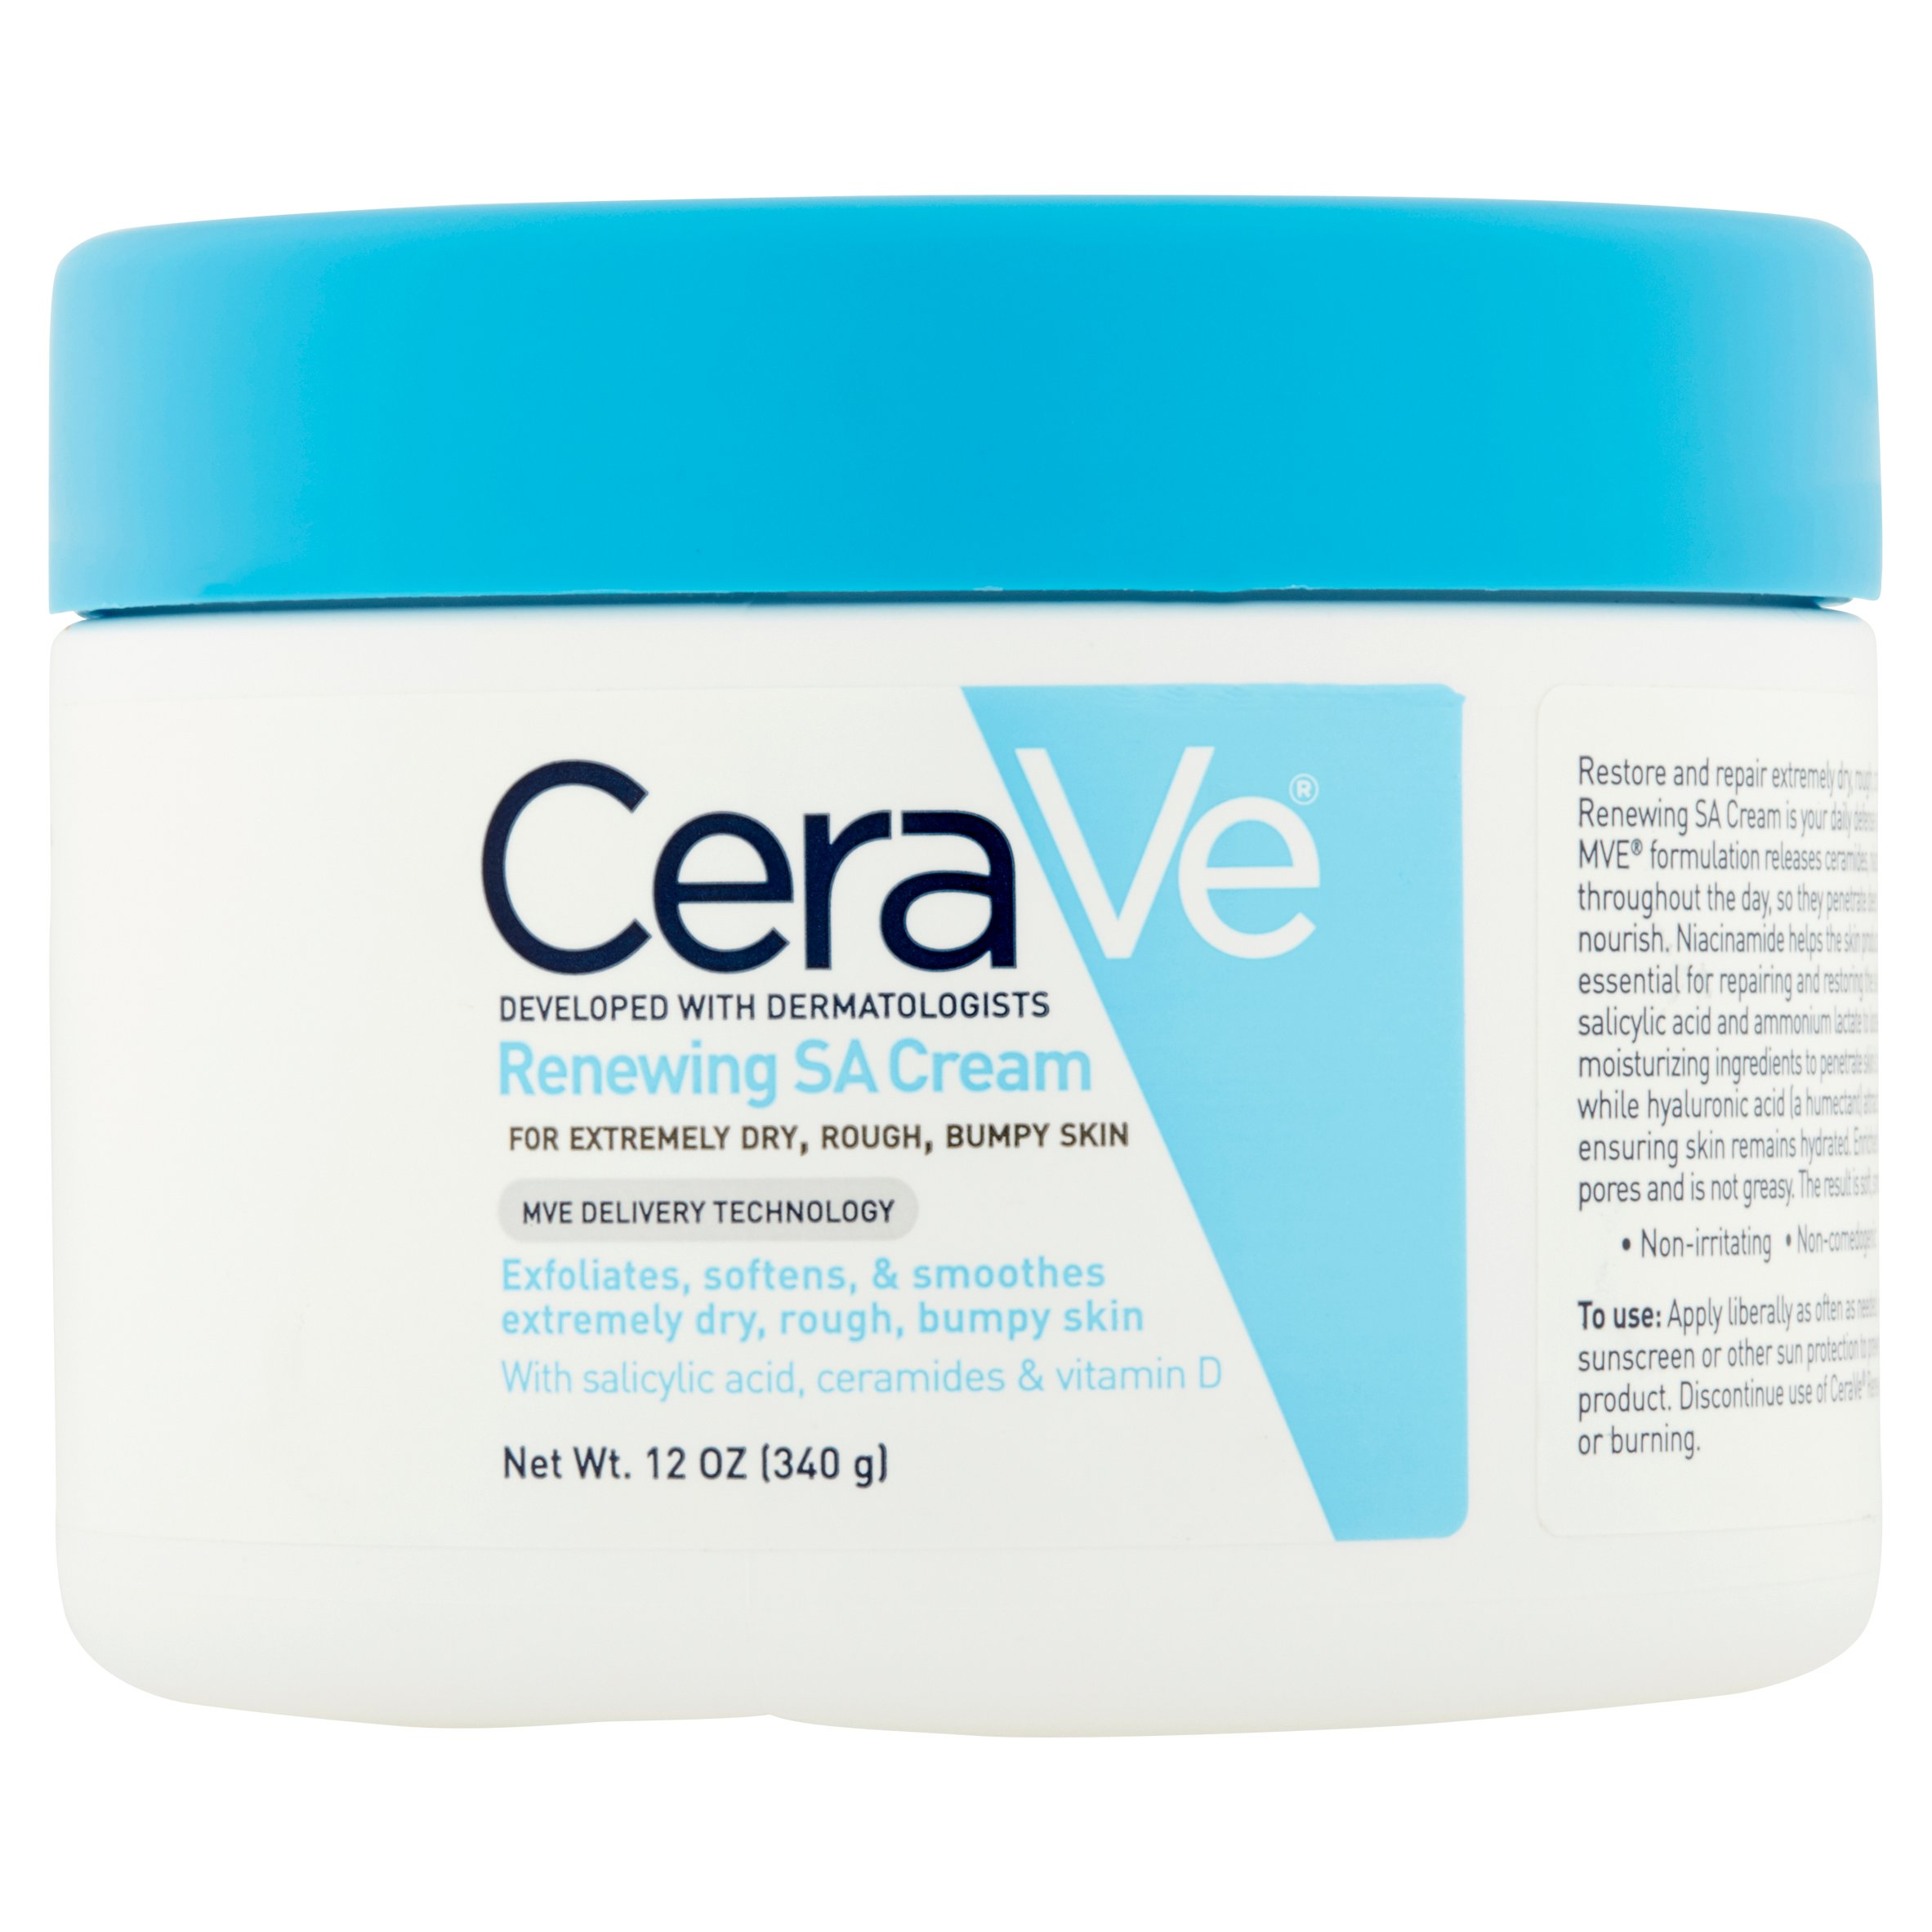 CeraVe ReNewing SA Cream, 12 oz by Valeant Products